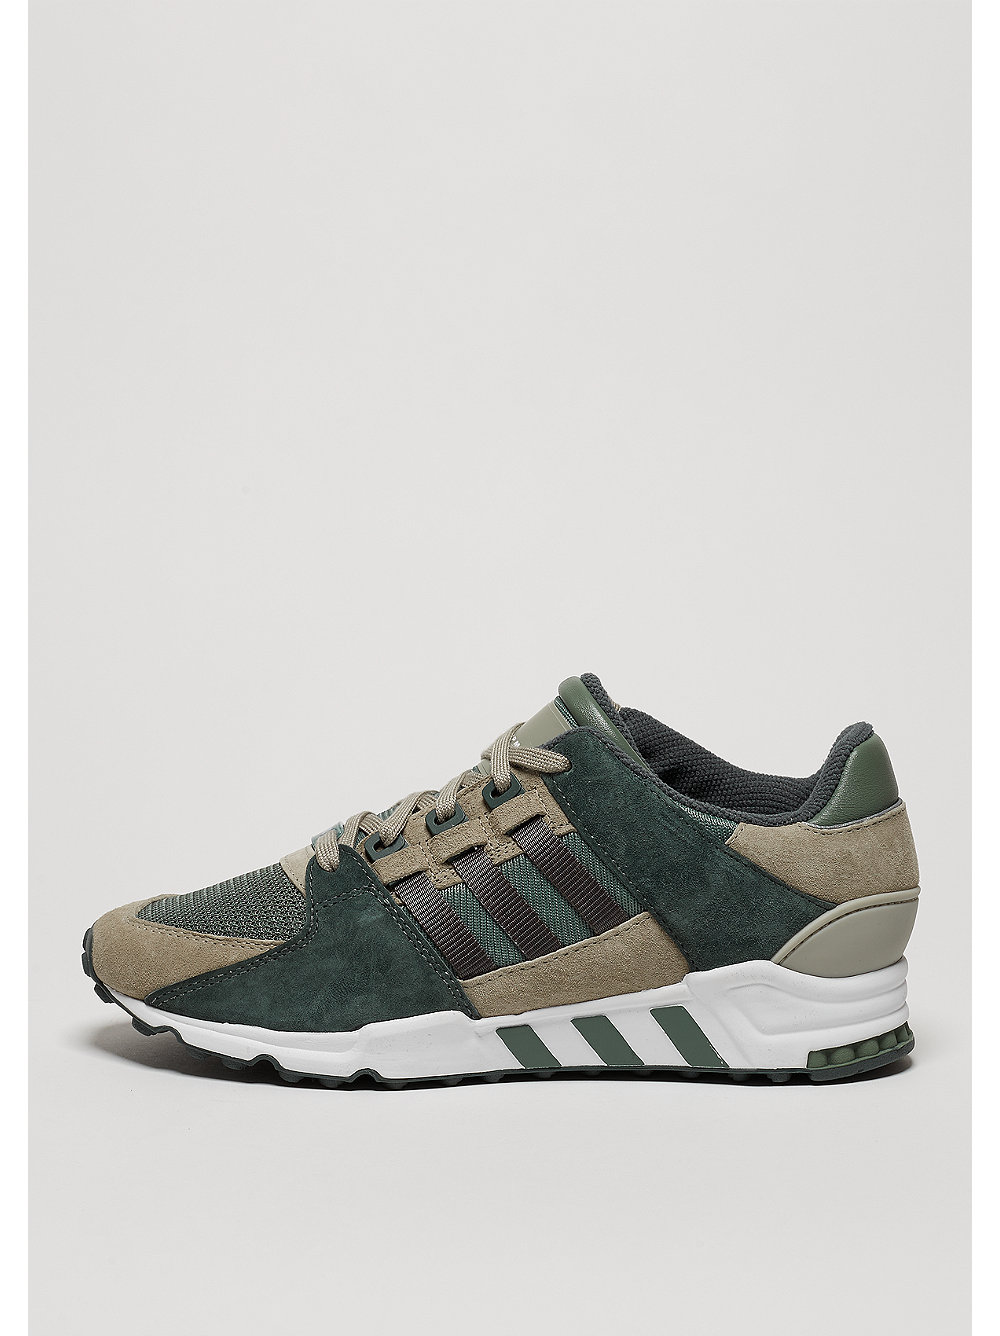 new product 574bf 056ed ... buy online f5a67 2613c adidas eqt support rf for sale